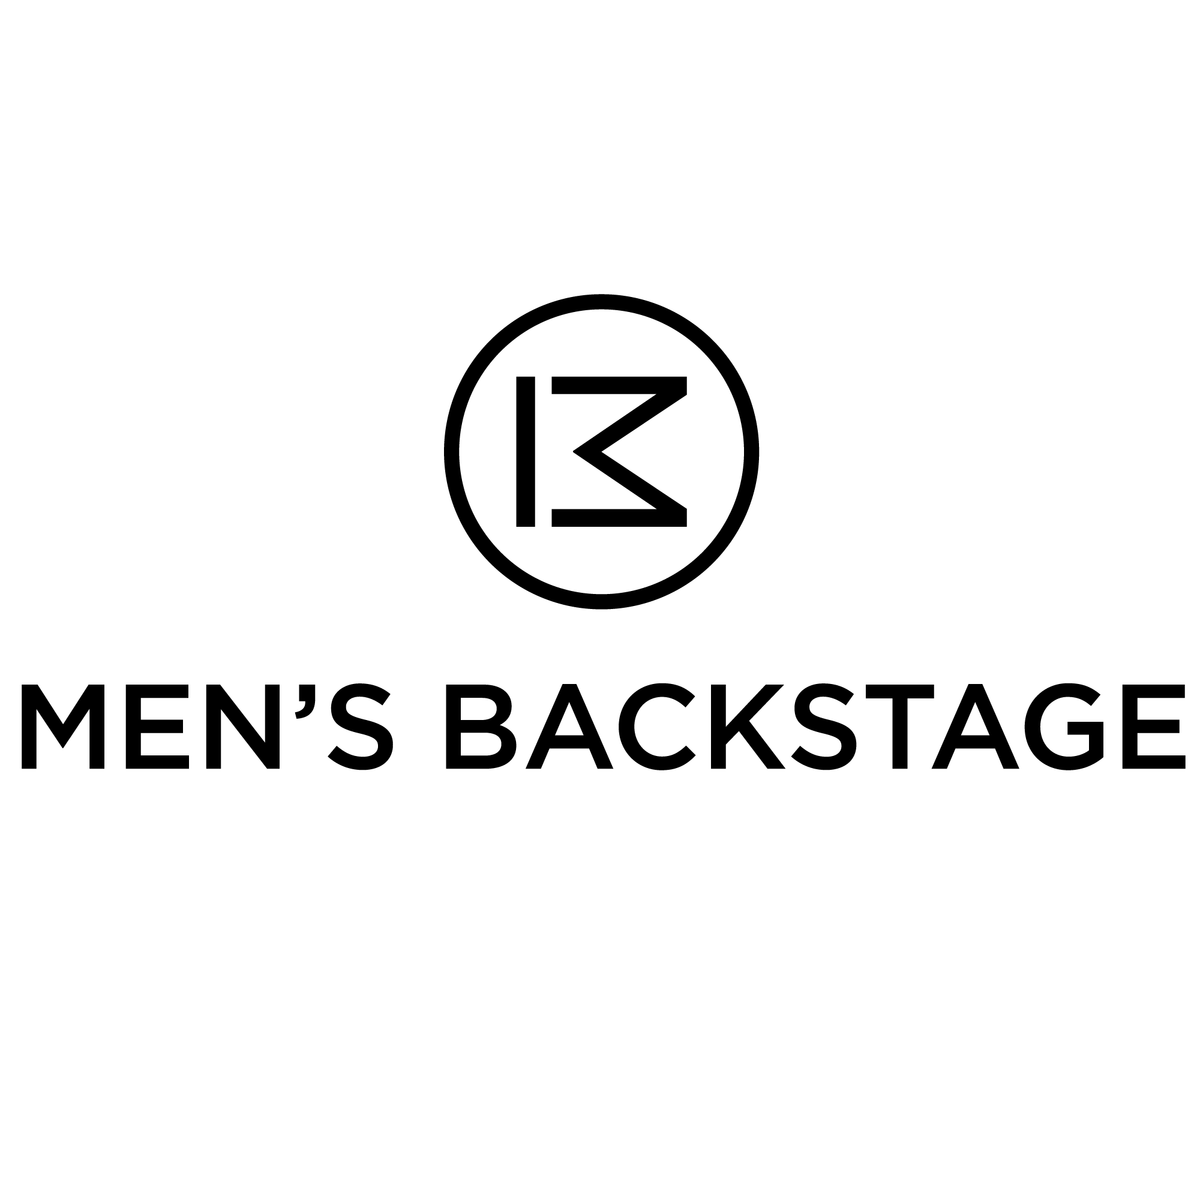 Men's Backstage